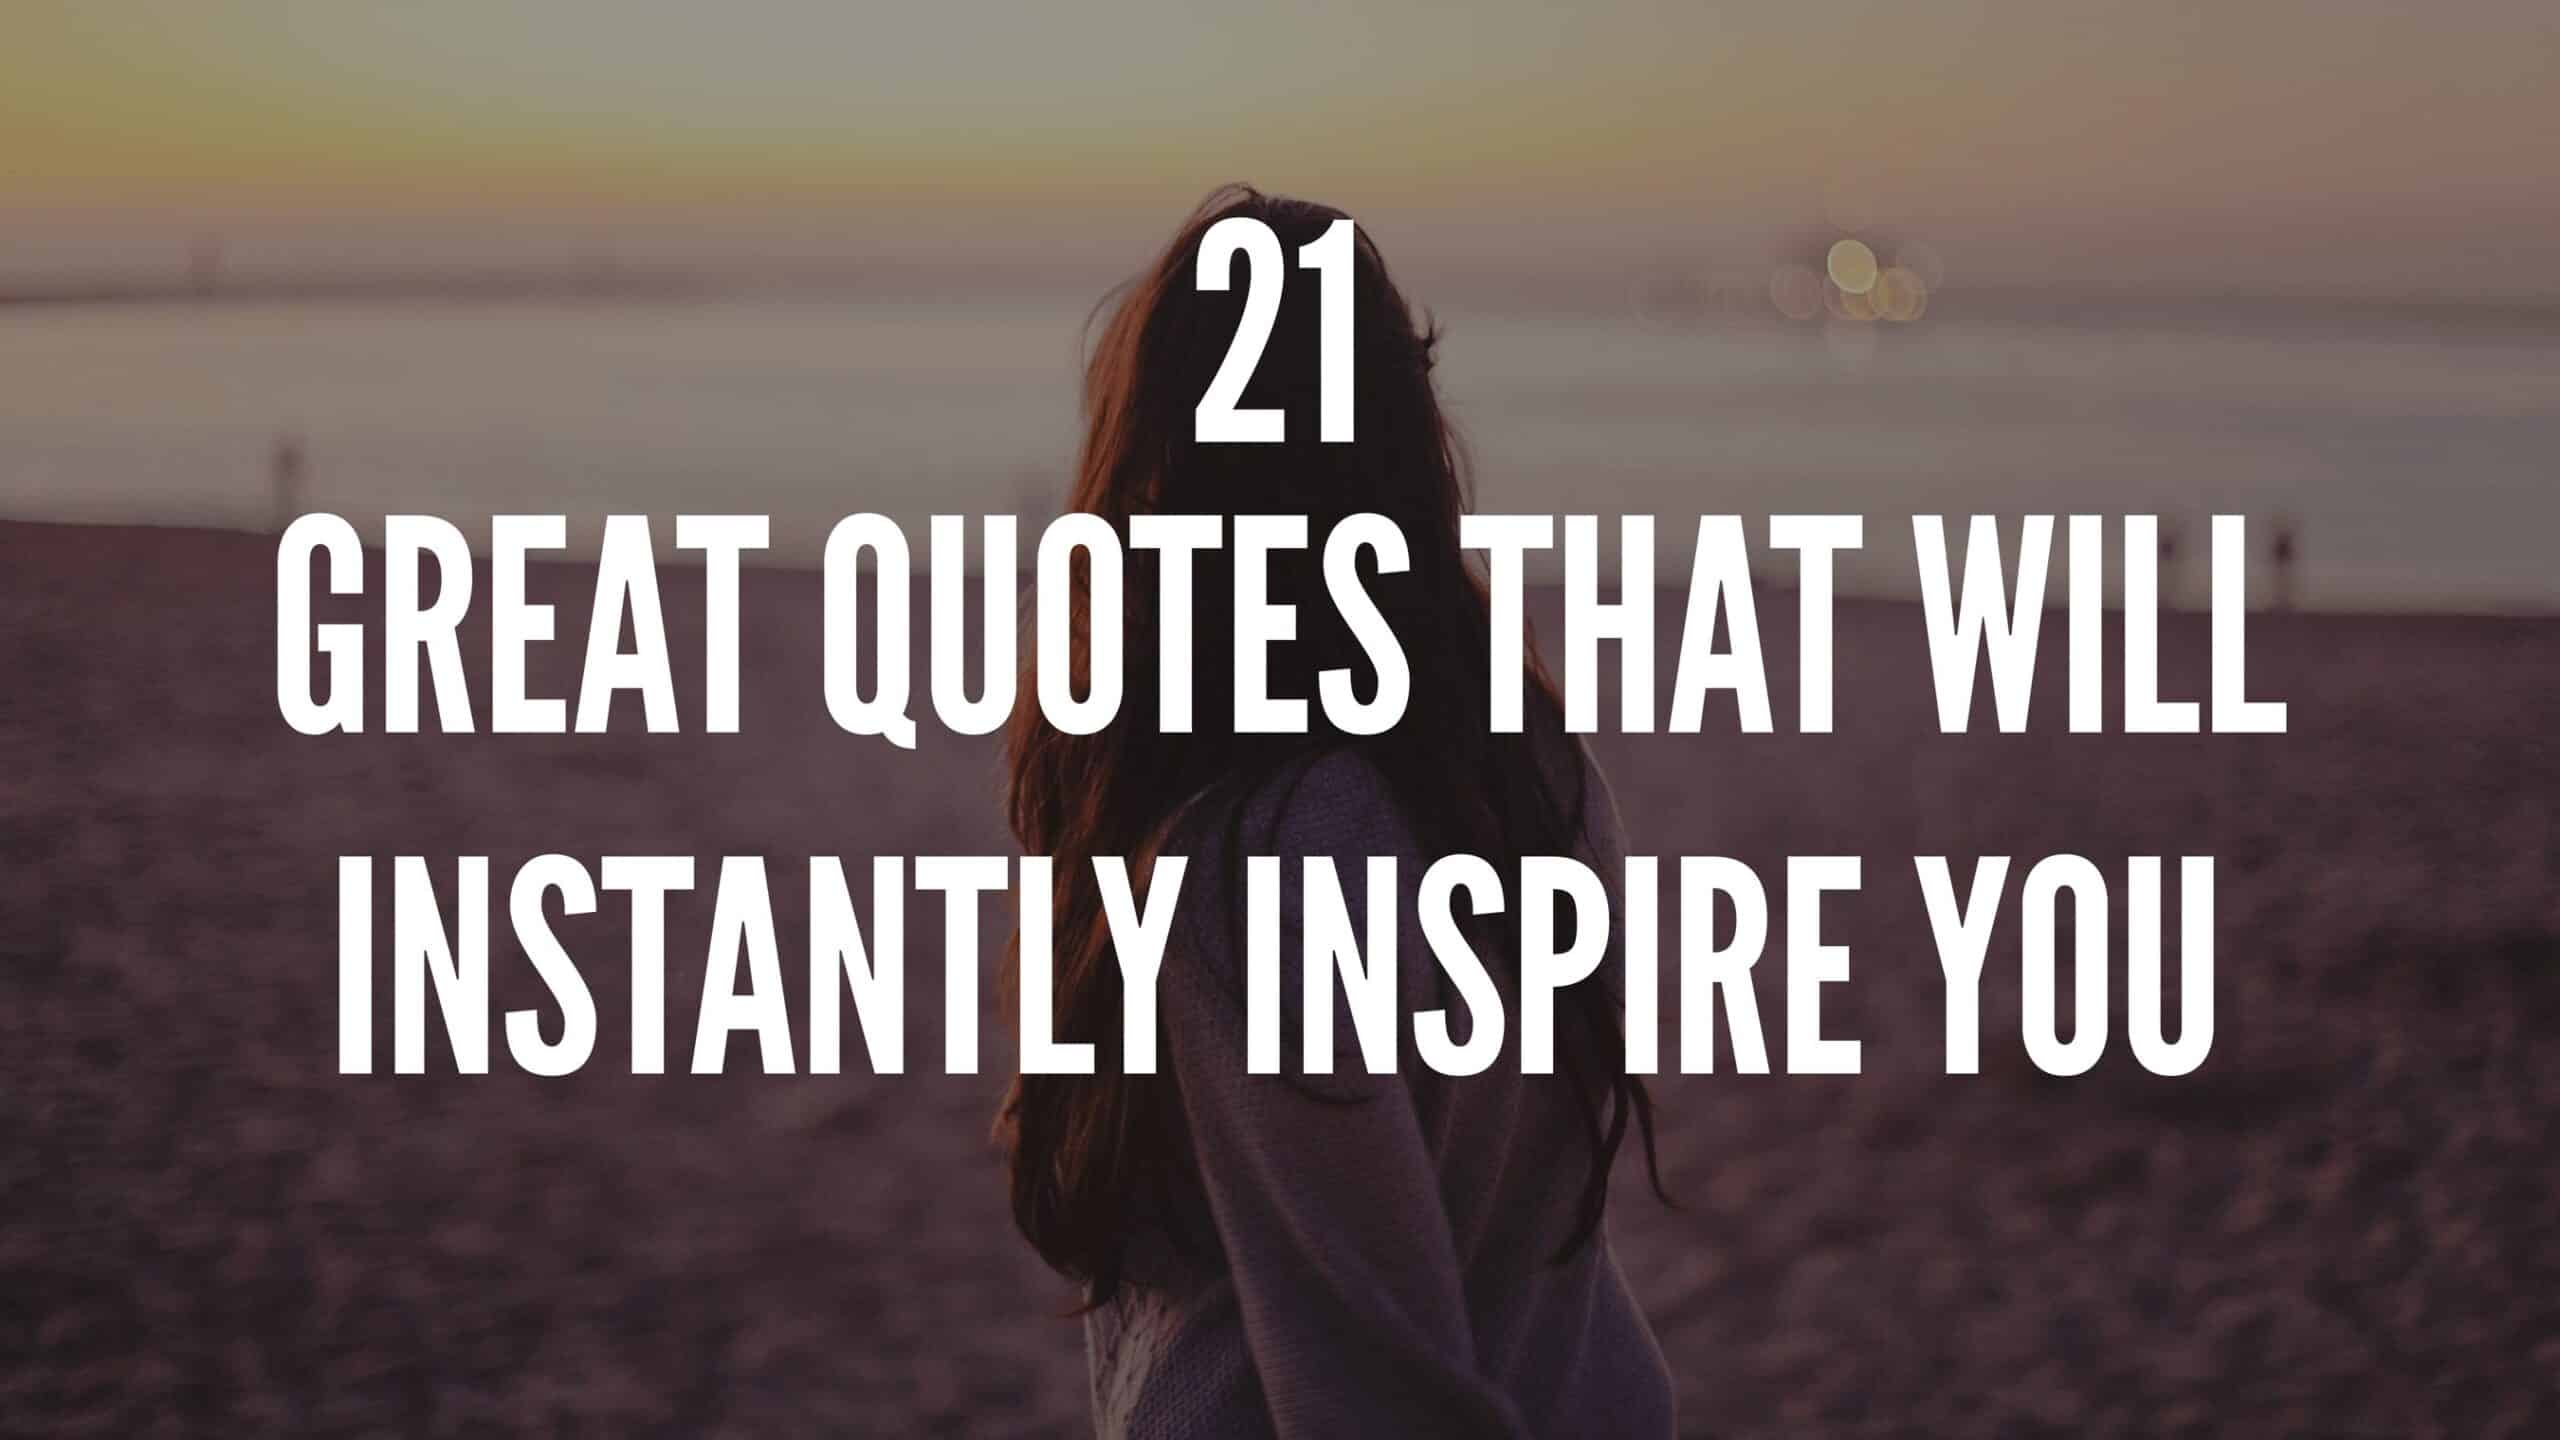 21 Great Quotes That Will Instantly Inspire You